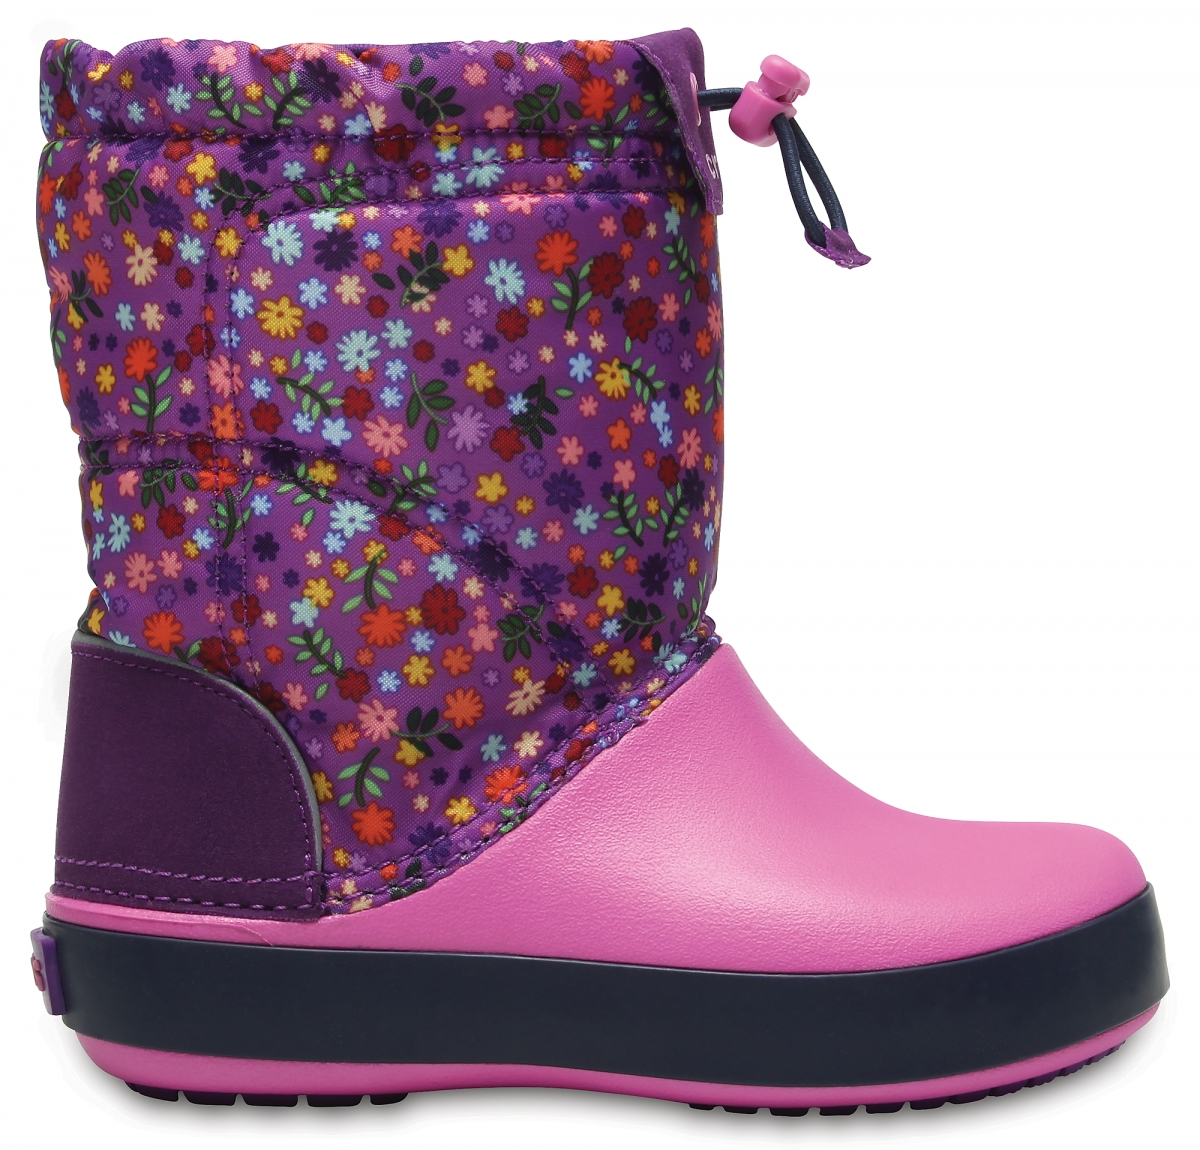 Crocs Crocband LodgePoint Graphic Boot Kids - Amethyst/Party Pink, J2 (33-34)